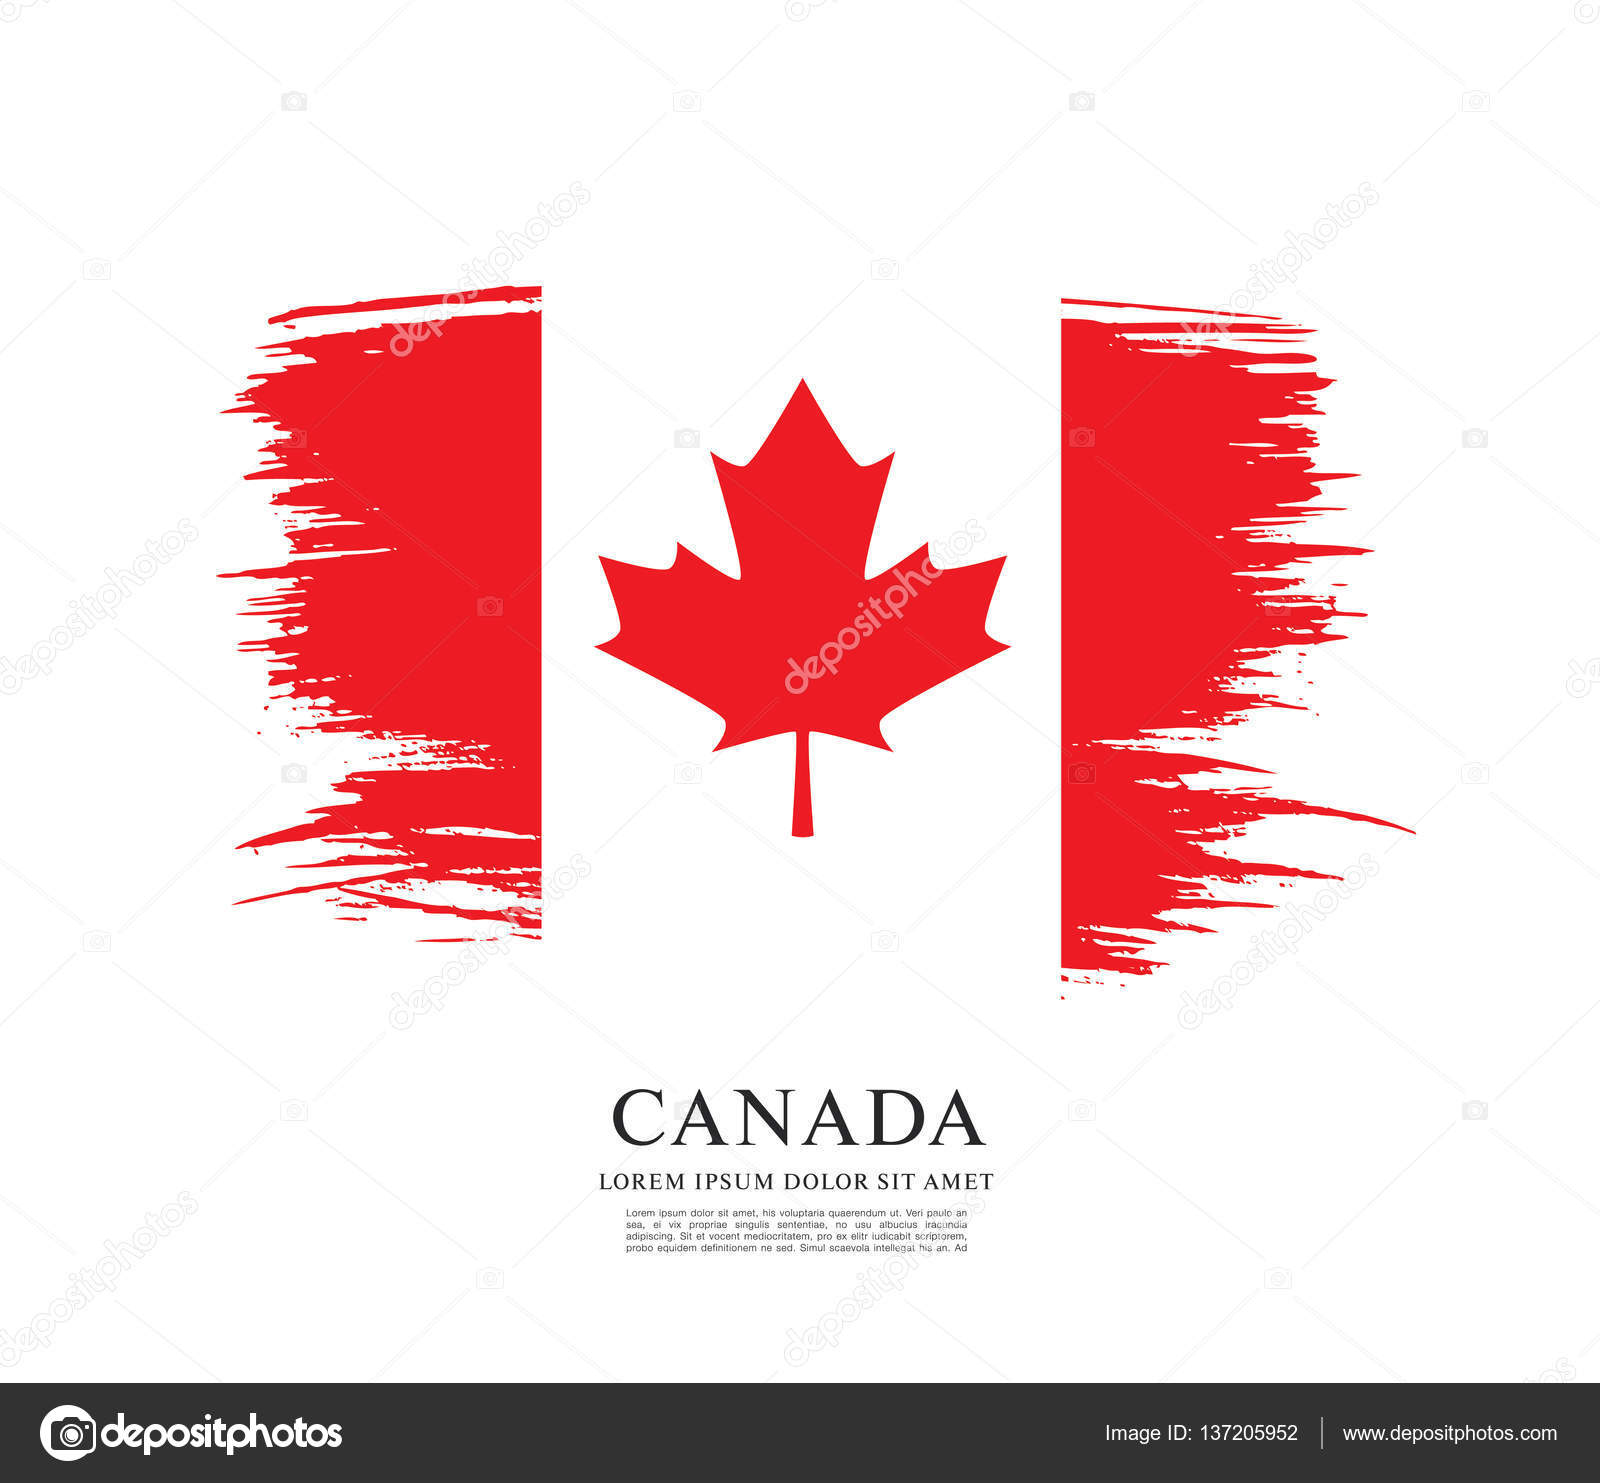 canadian flag essay In 1965, the canadian flag, featuring a red maple leaf against a white backdrop, became canada's official national flag in addition to the flag, the maple leaf appears on canadian coins learn more about canada.